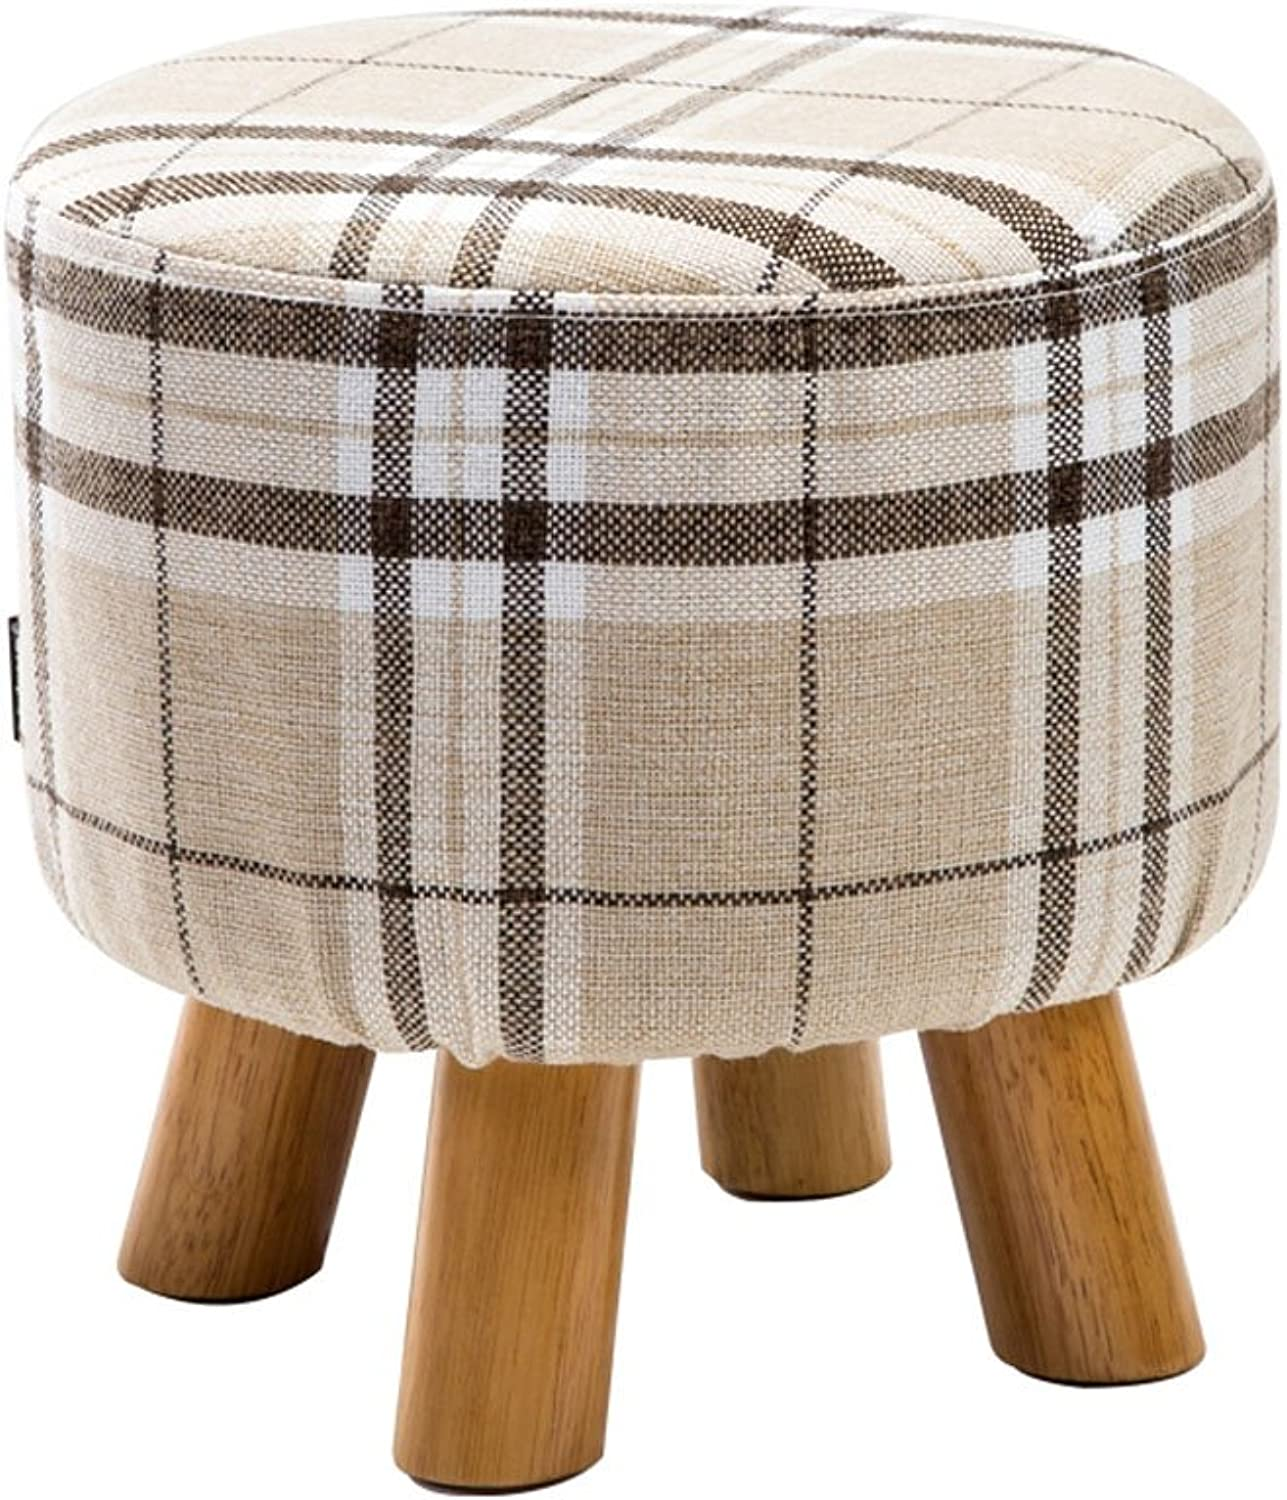 CQOZ Stool Changing his shoes Stool Low Stool Solid Wood Footstool Small Bench Sofa Stool Round Stool Fashion Creative Sofa Stool (color    1, Size   Large)